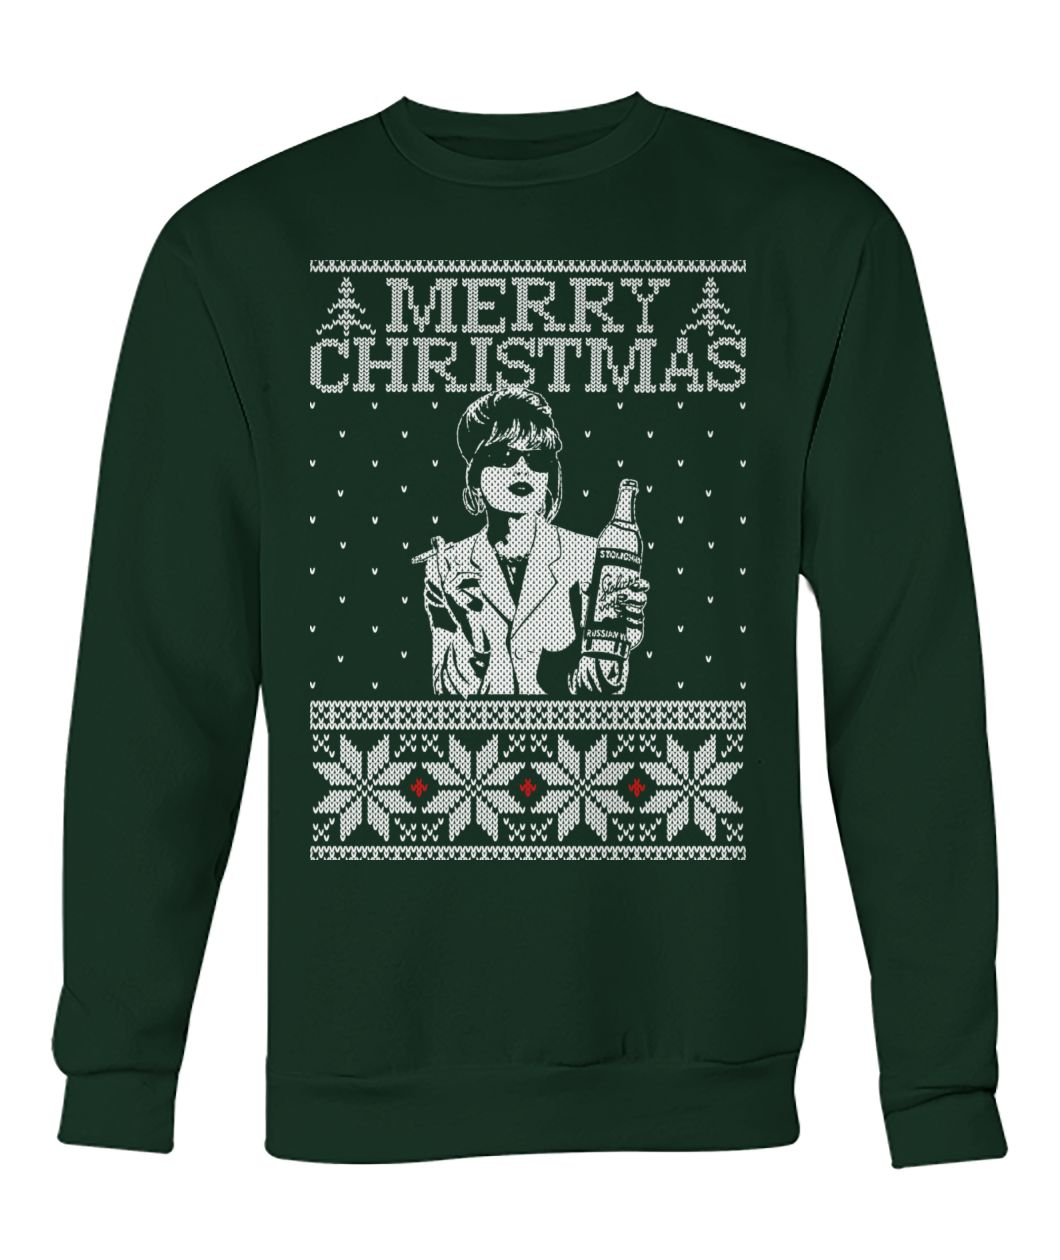 cc5782f9330481 Xmas Af | Holiday 2016 | Christmas sweaters, Christmas jumpers, Xmas ...